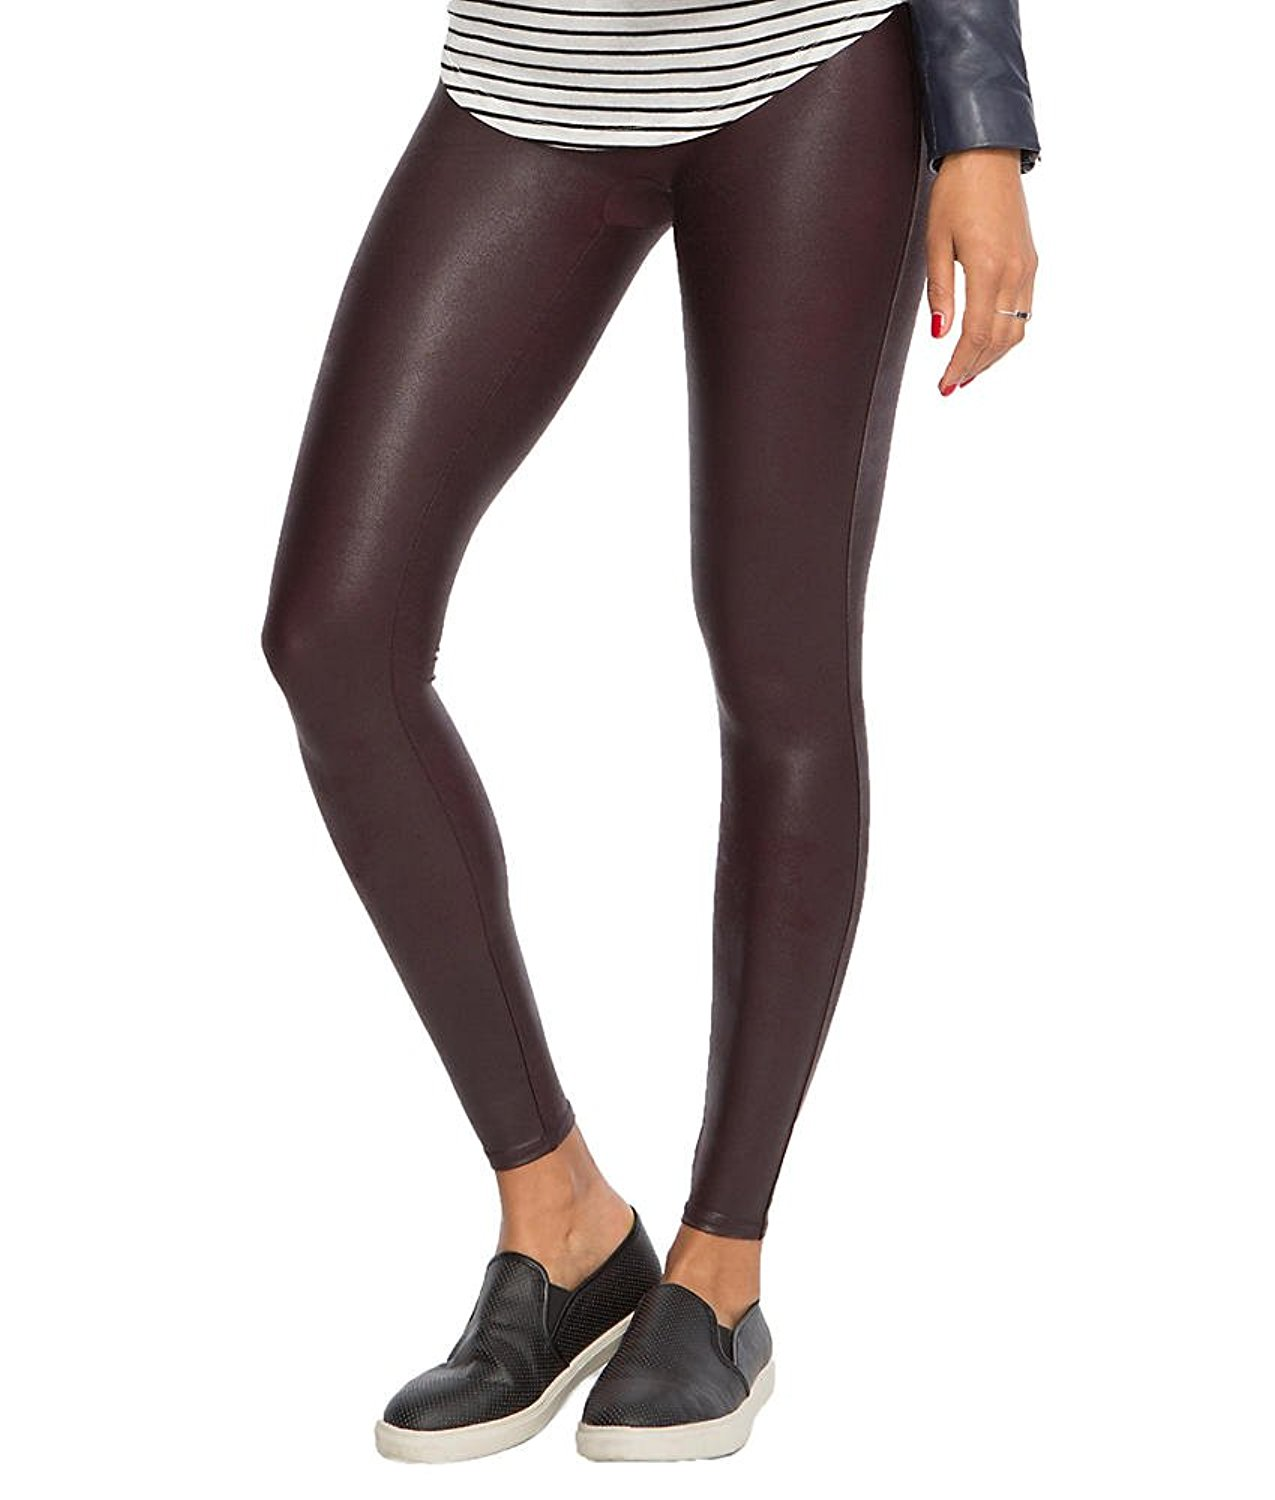 2313646ae470 SPANX Women s Ready-to-Wow Faux Leather Leggings